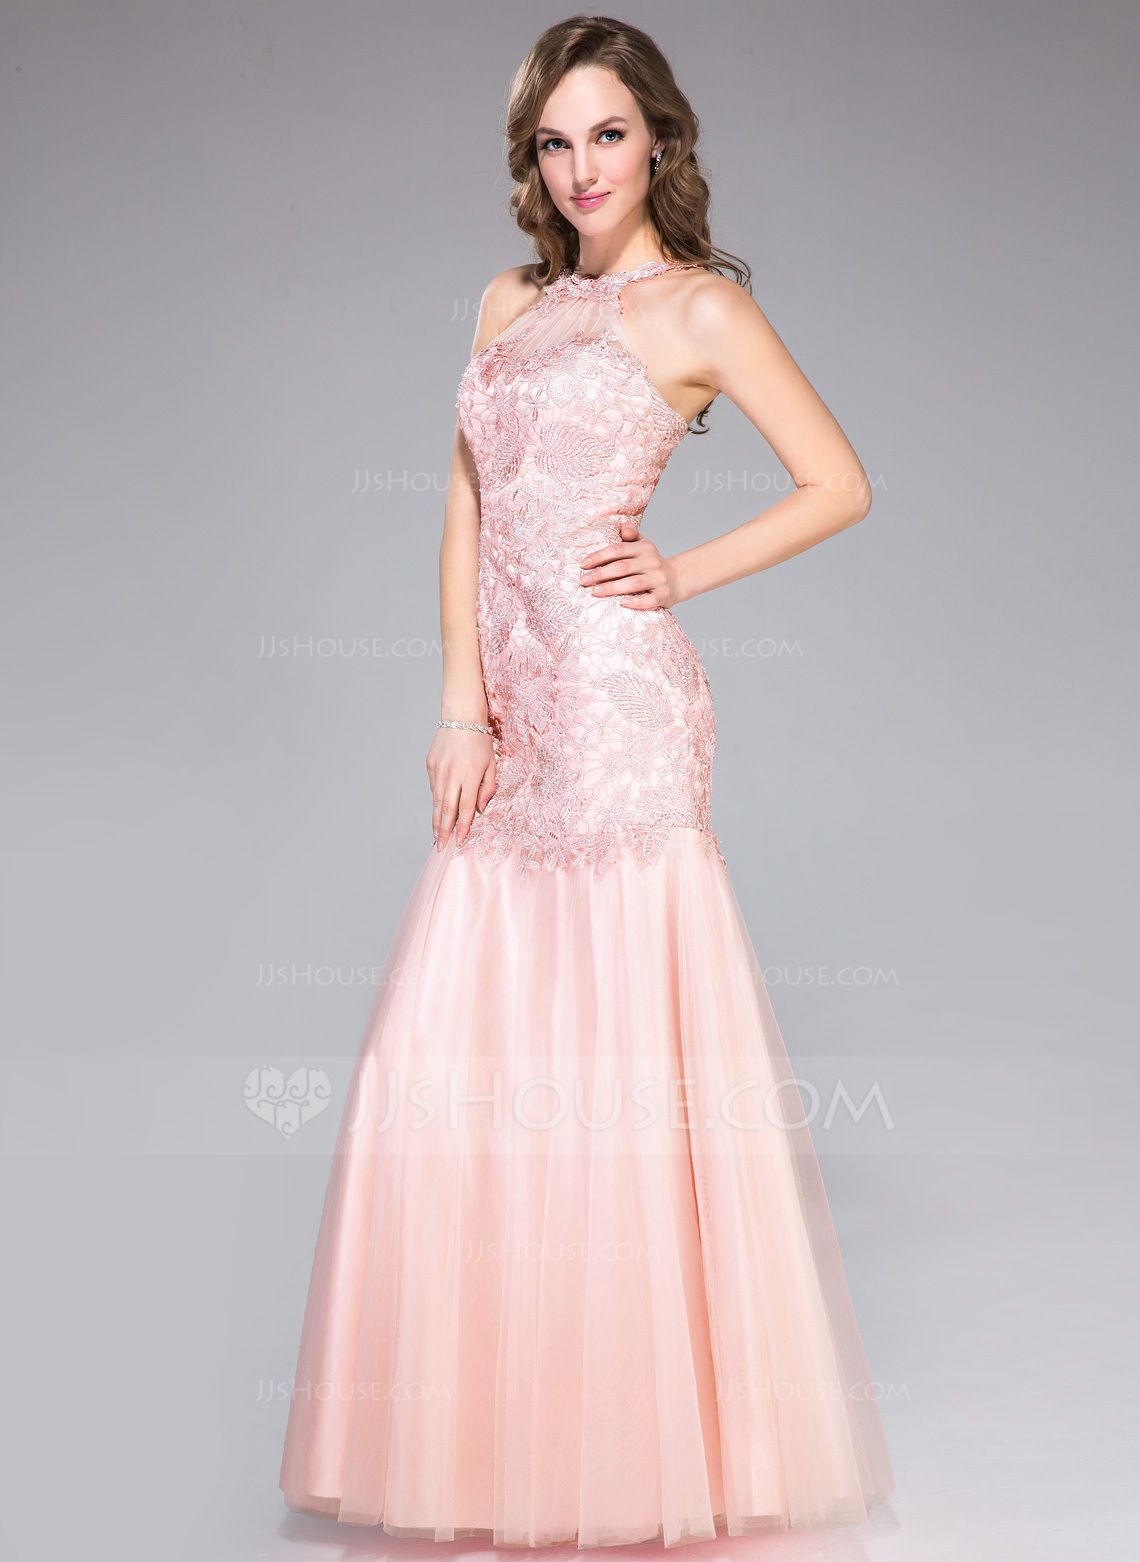 Trumpetmermaid scoop neck floorlength tulle lace prom dress with